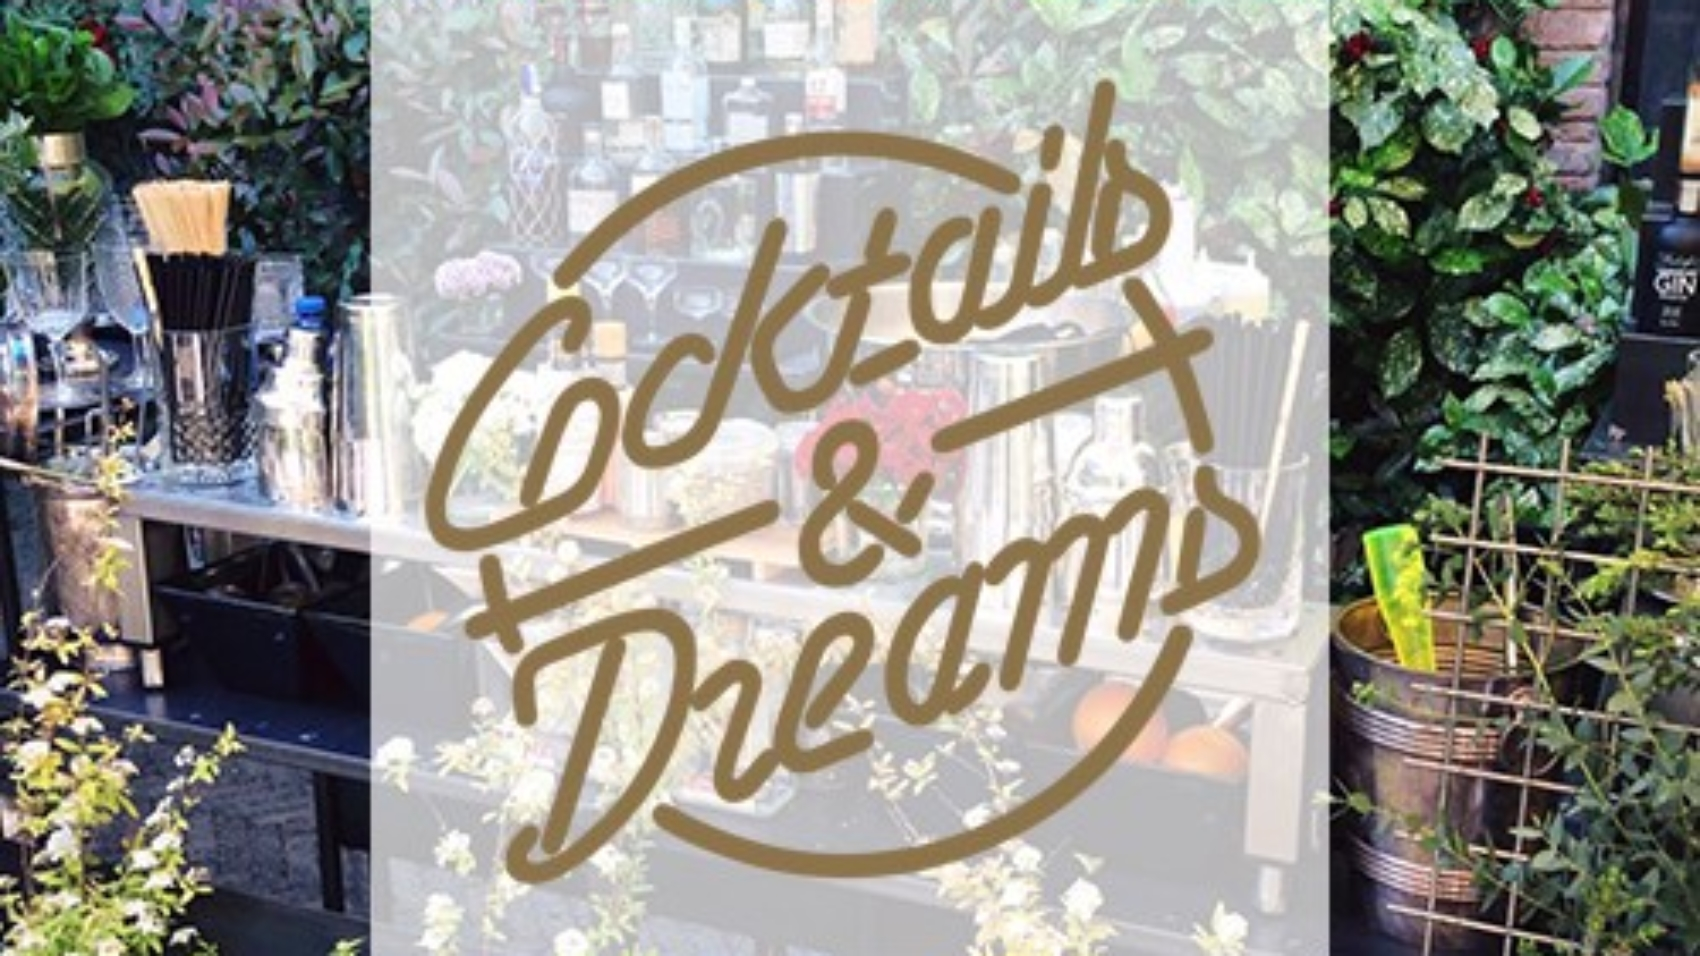 Cocktails&Dreams